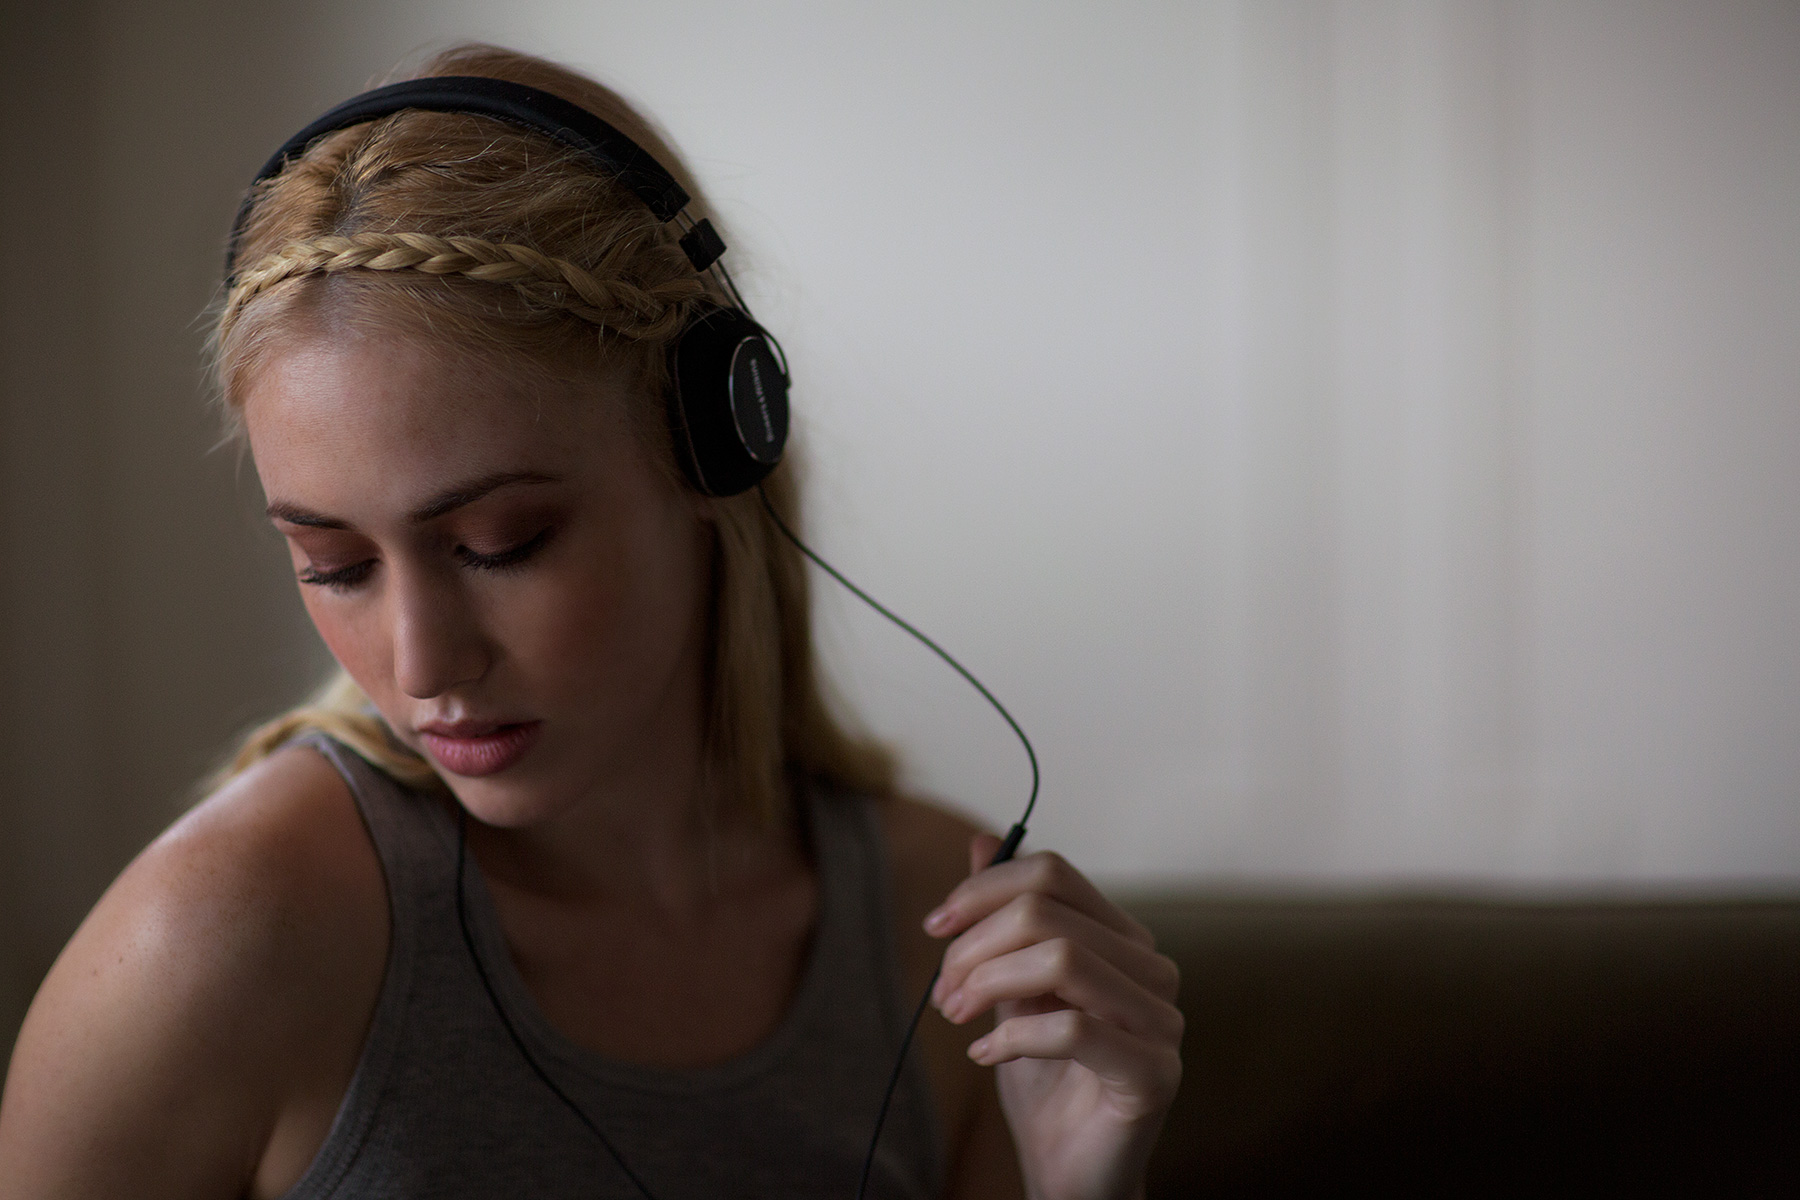 Shannon_Headphones.JPG